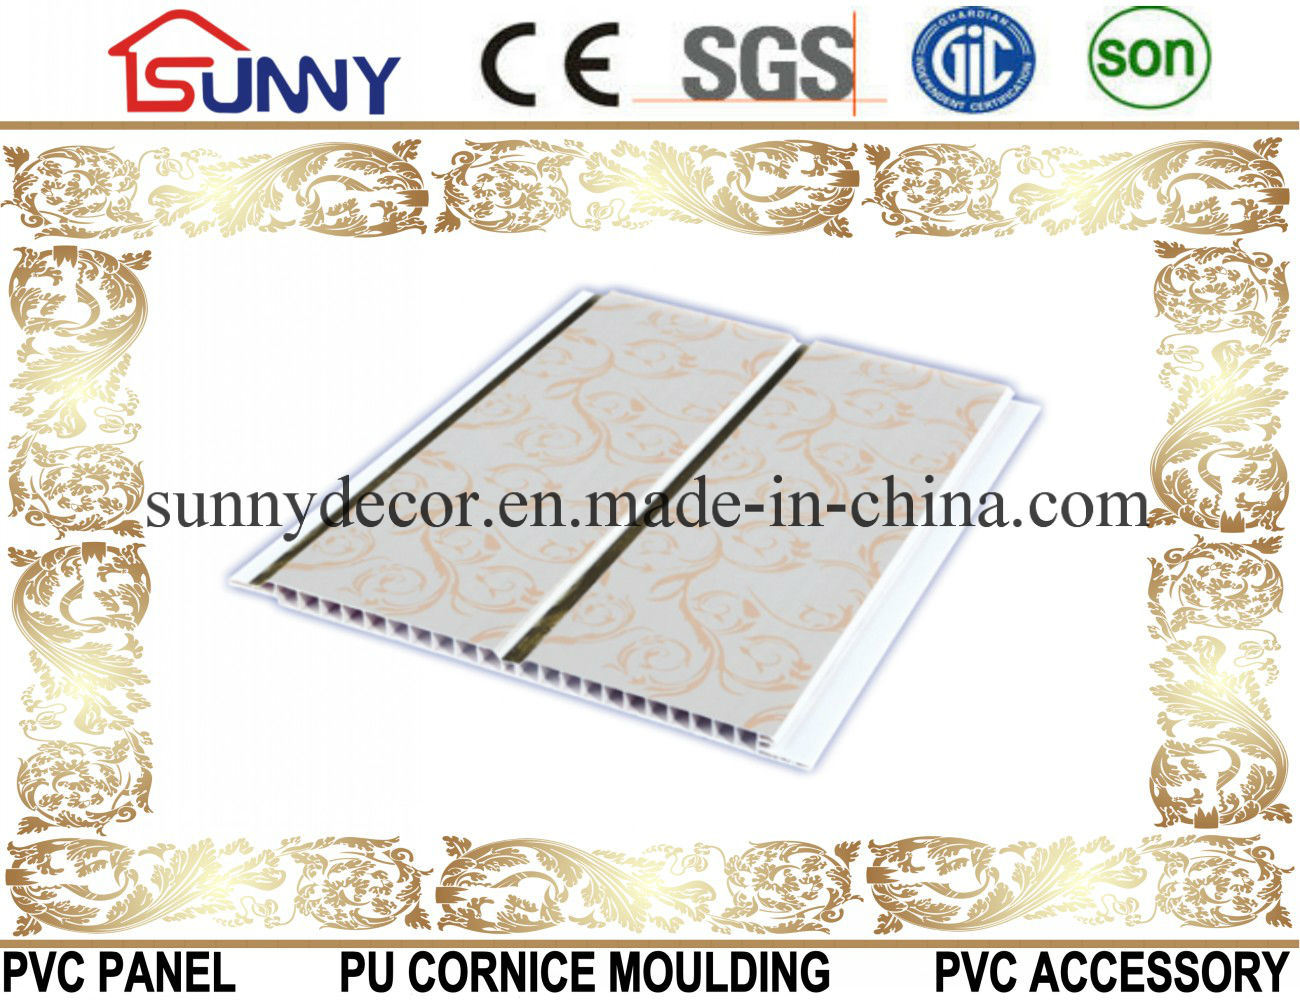 20cm Width Middle Groove PVC Wall Panel Ceiling Panel with Printing for Interior Decoration